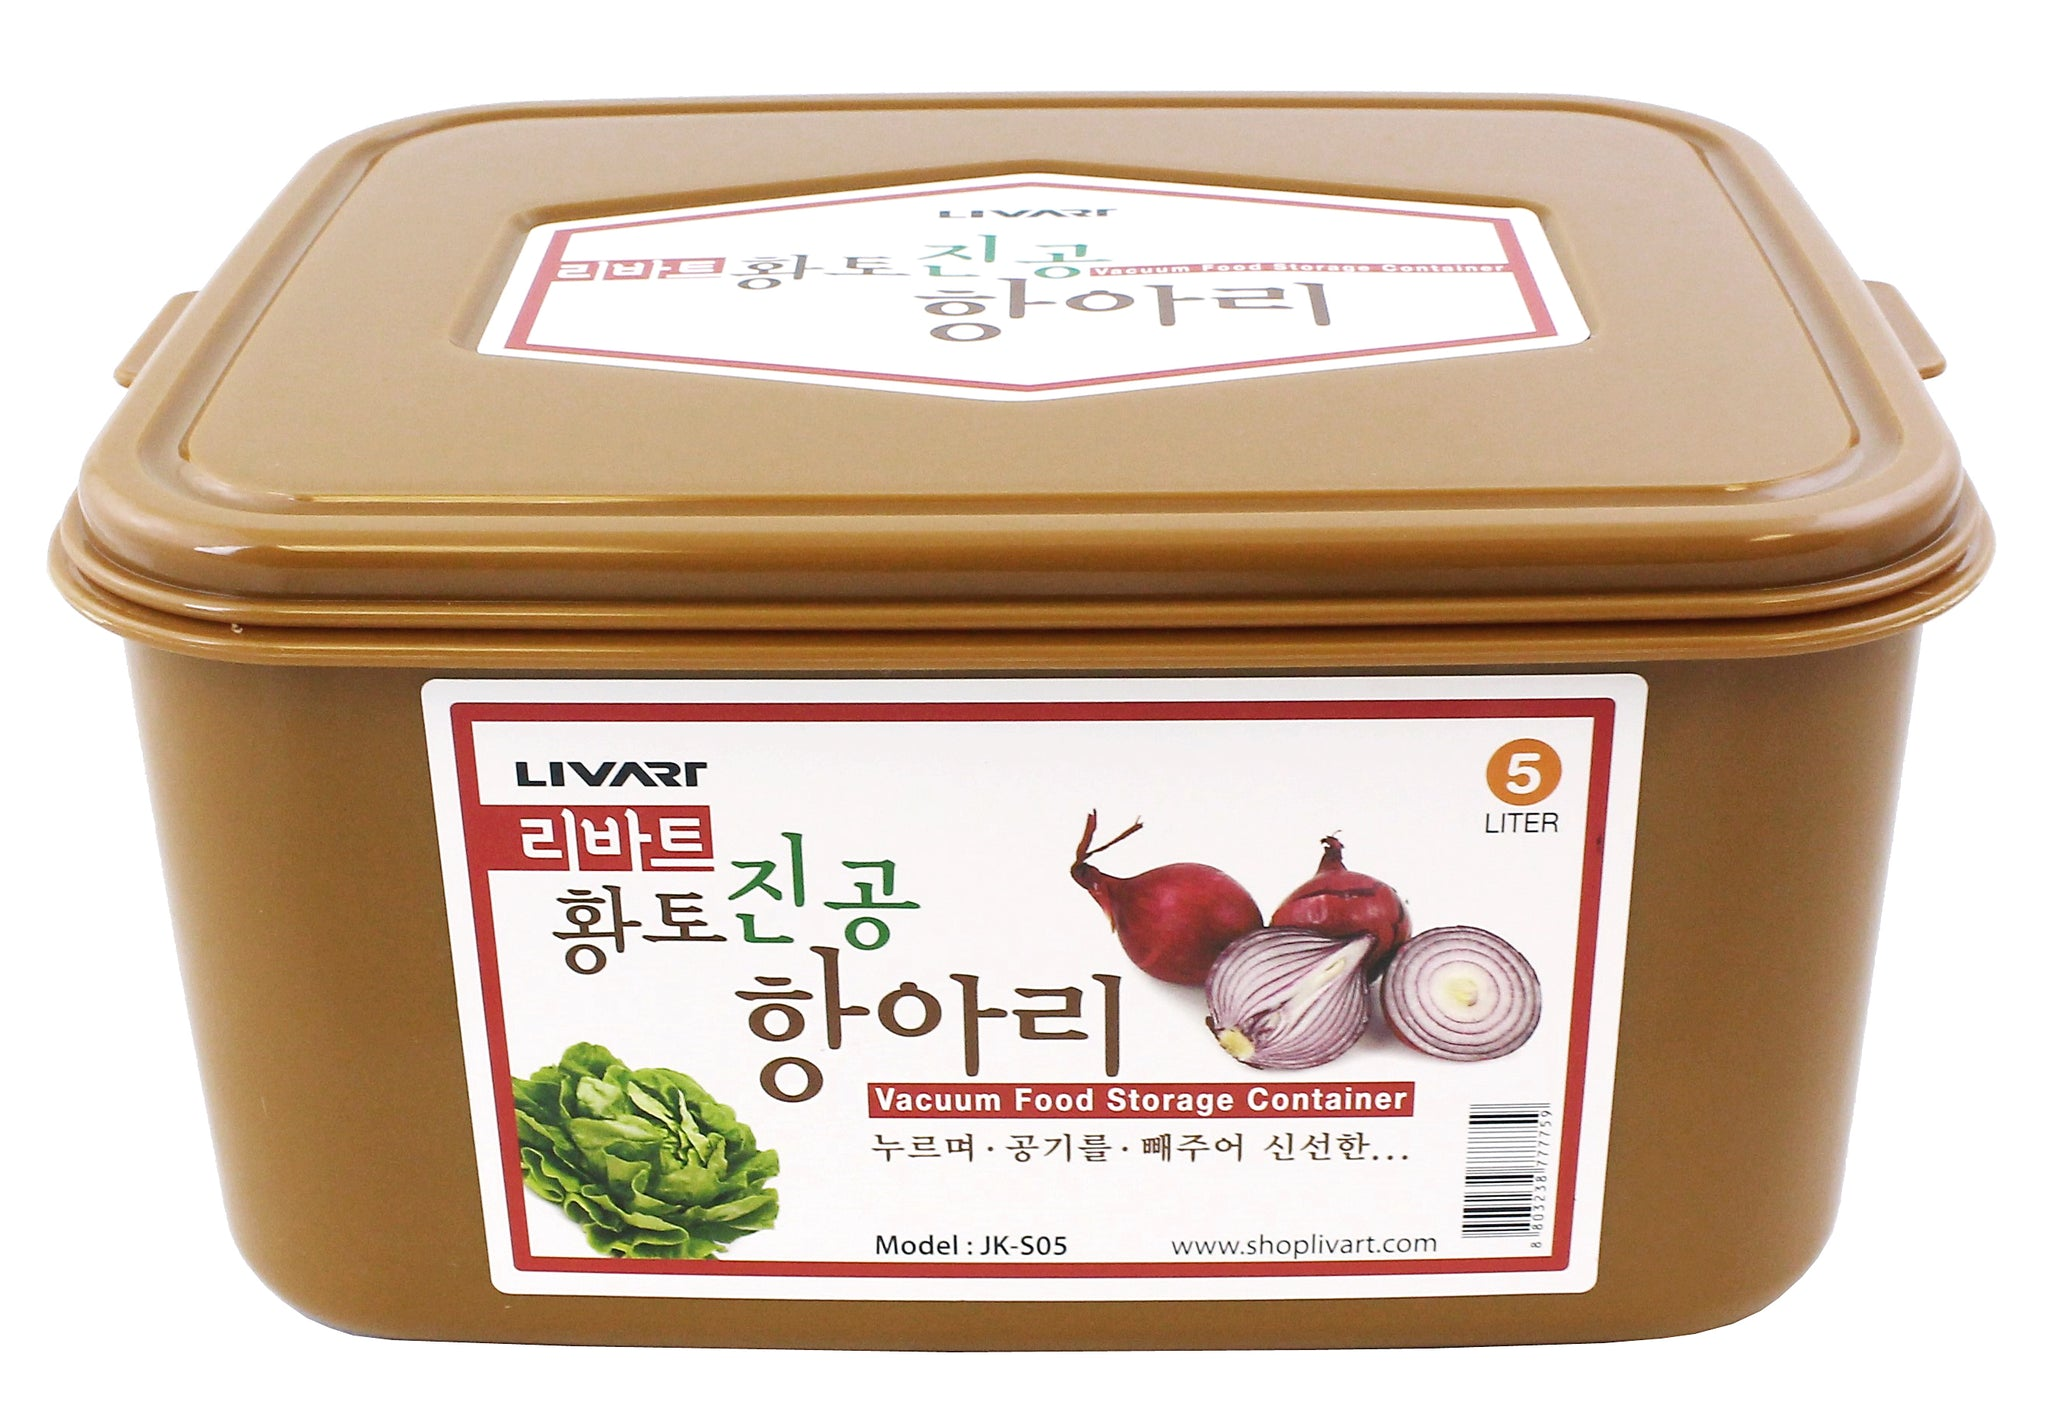 Livart Kimchi, Sauerkraut Fermentation and Storage Container with Inner Vacuum Lid 5 Liter FREE SHIPPING